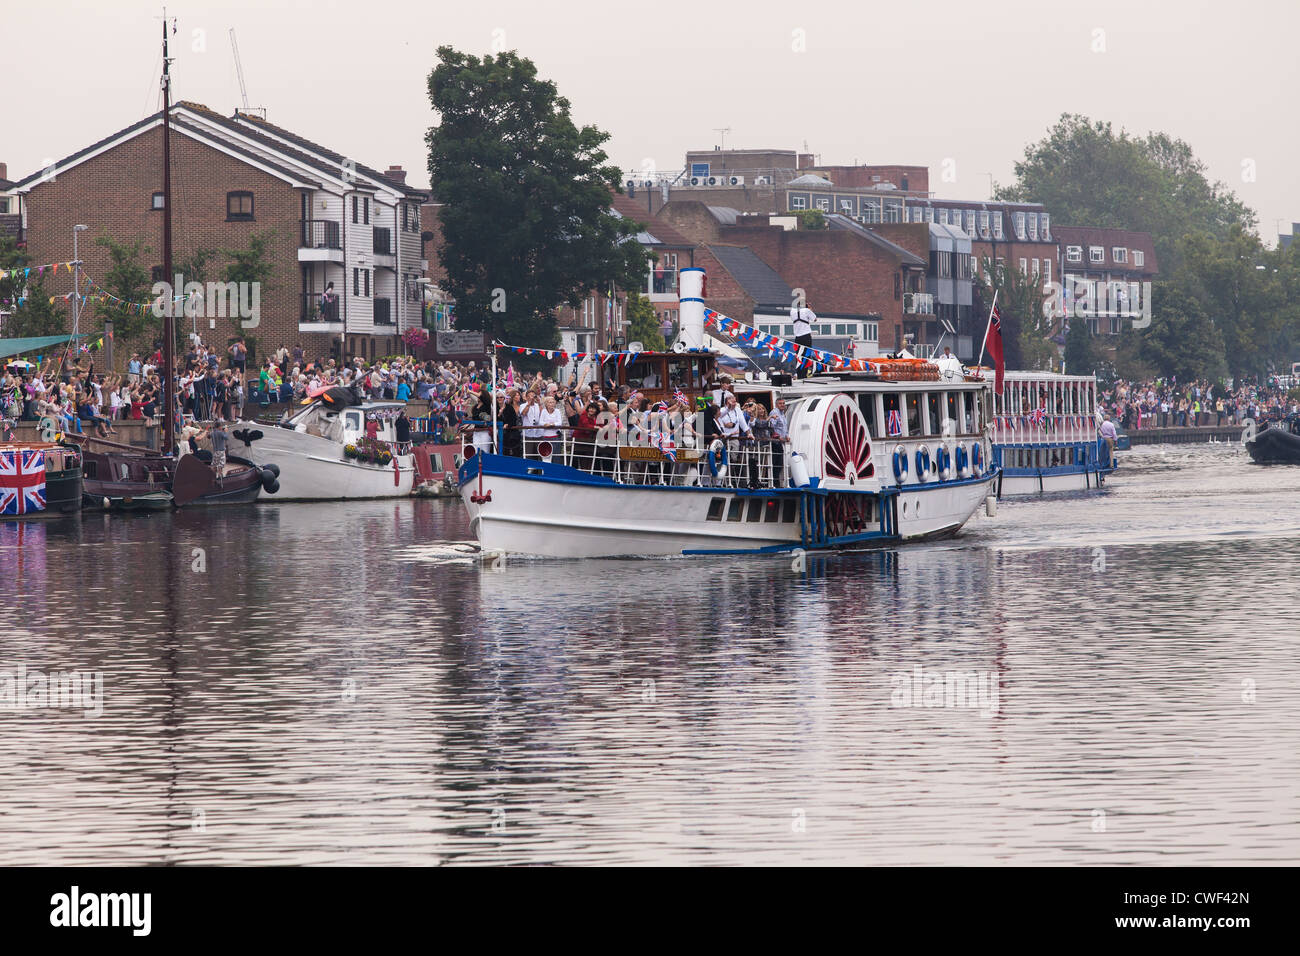 Yarmouth Belle follows the 2012 Olympic Flame on Royal Boat Gloriana. - Stock Image